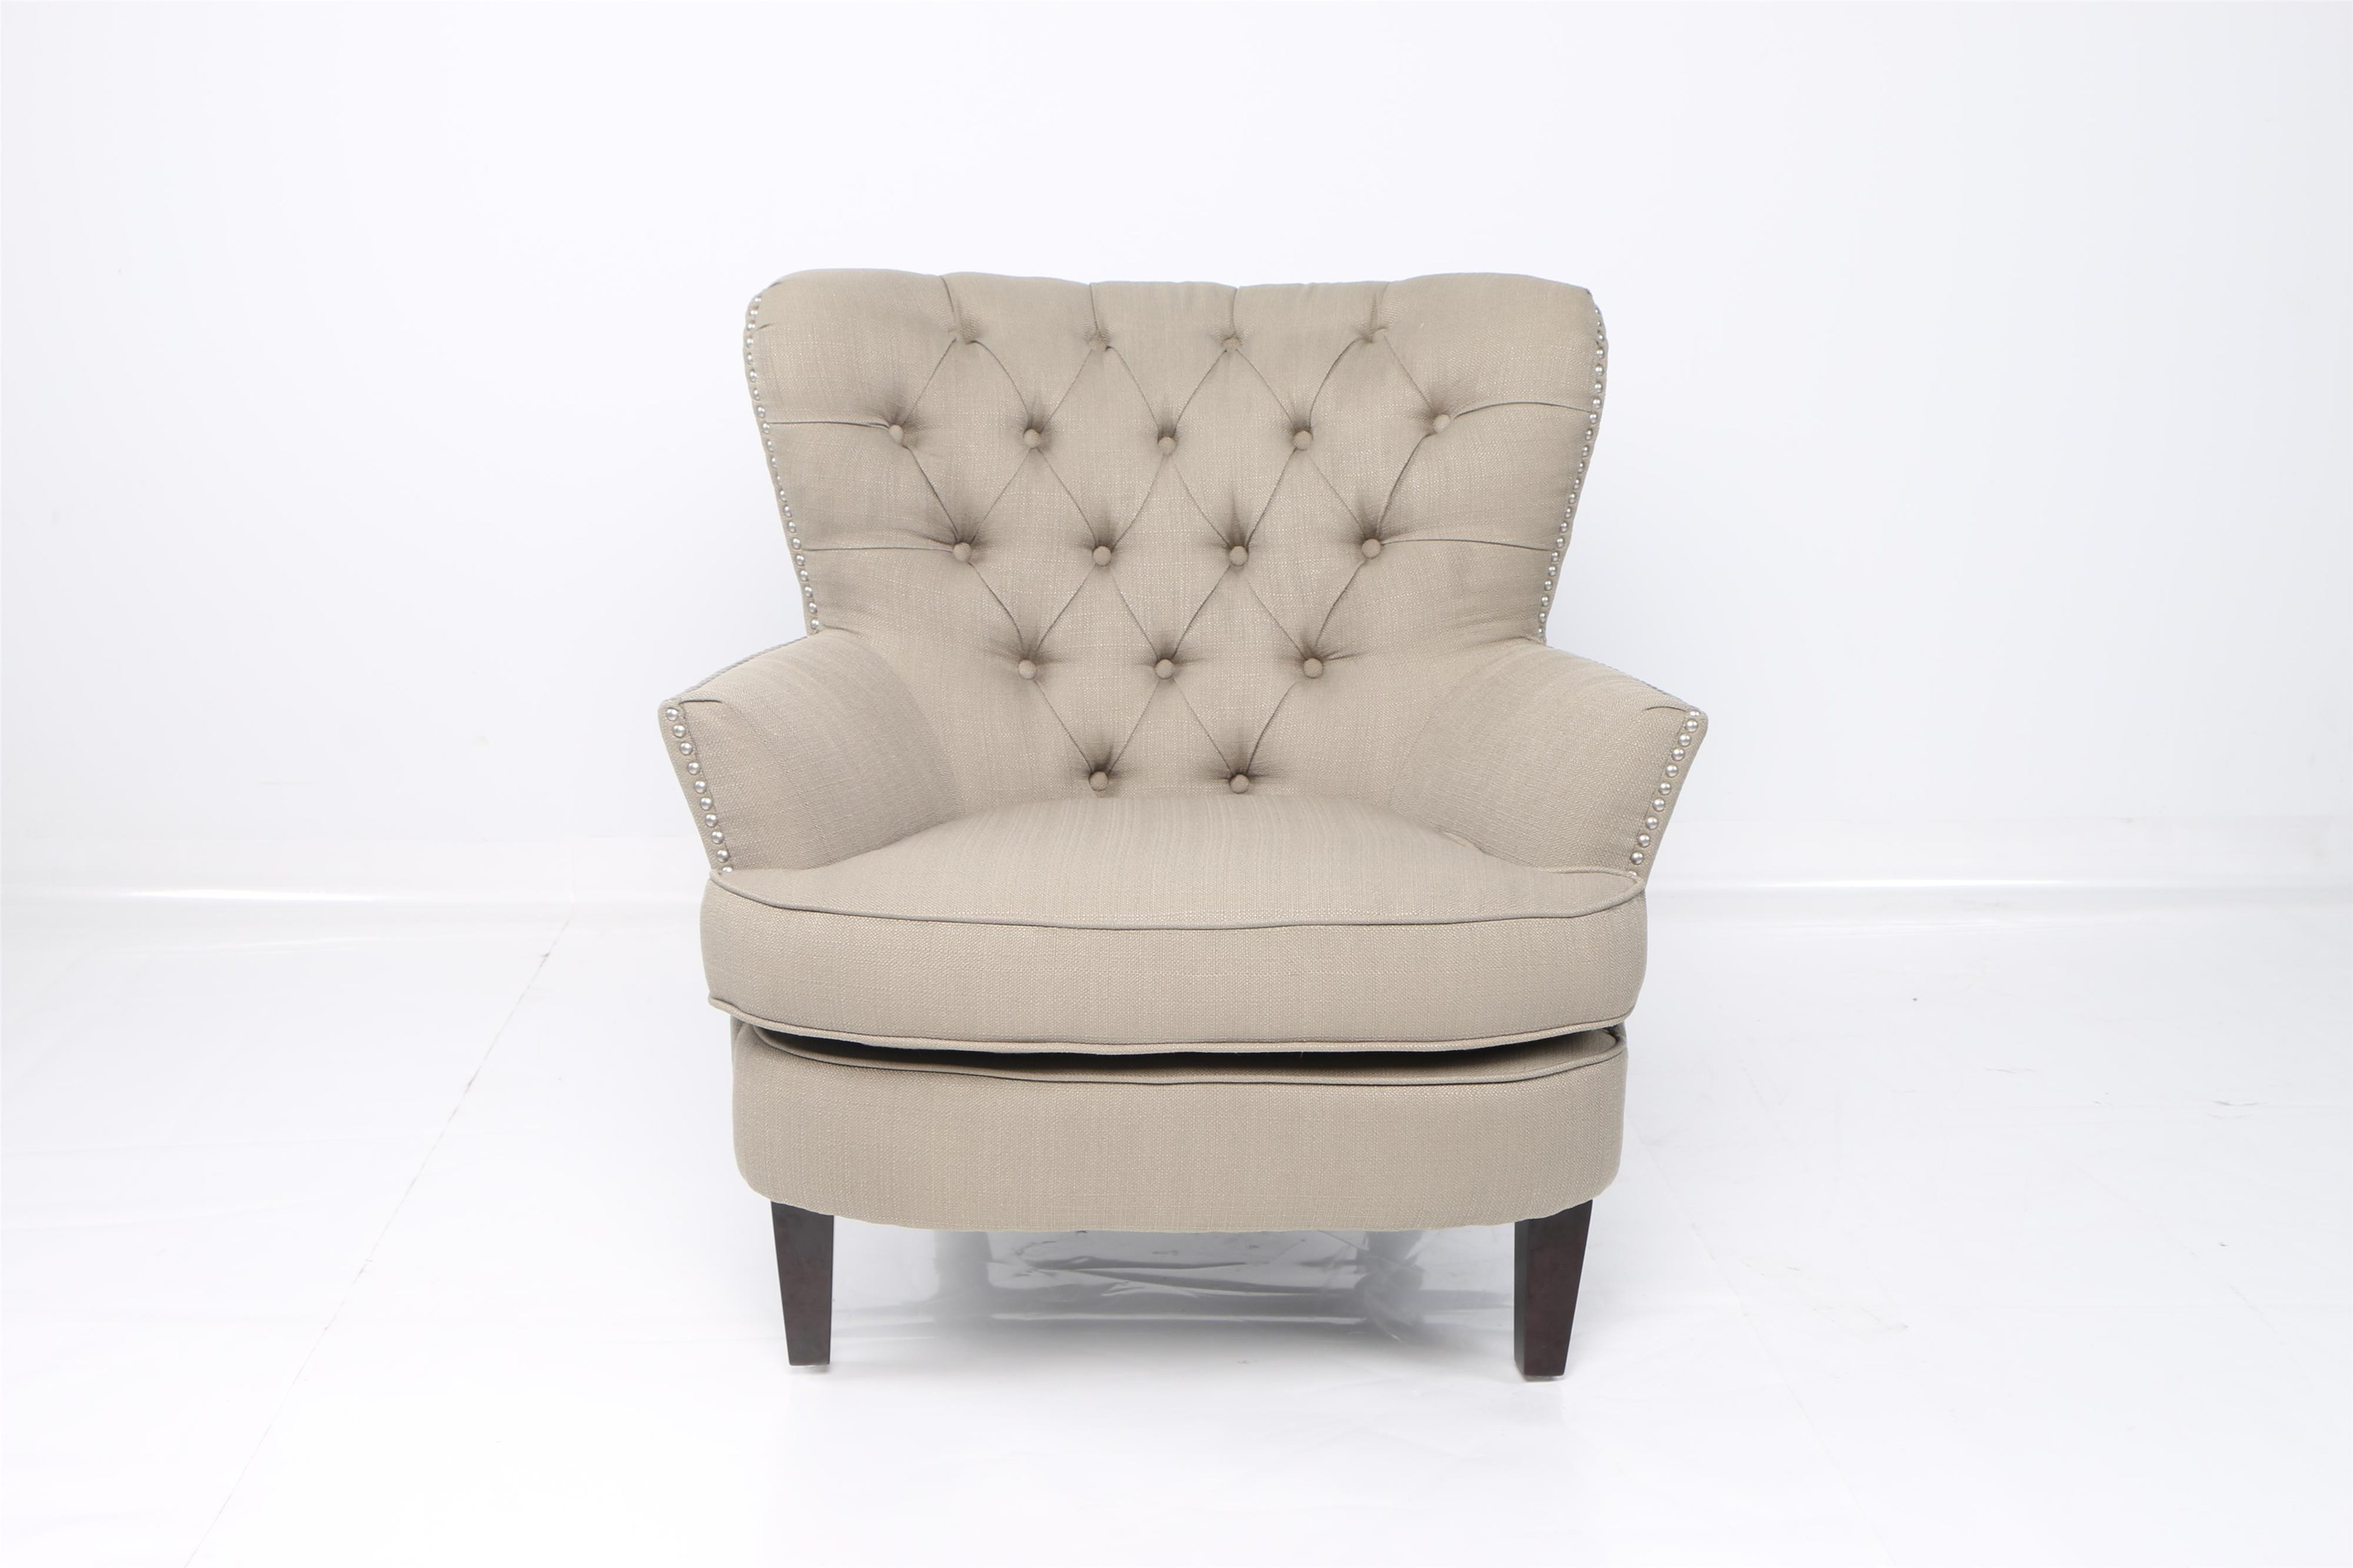 Accent chairs american furniture warehouse american for American furniture warehouse chairs